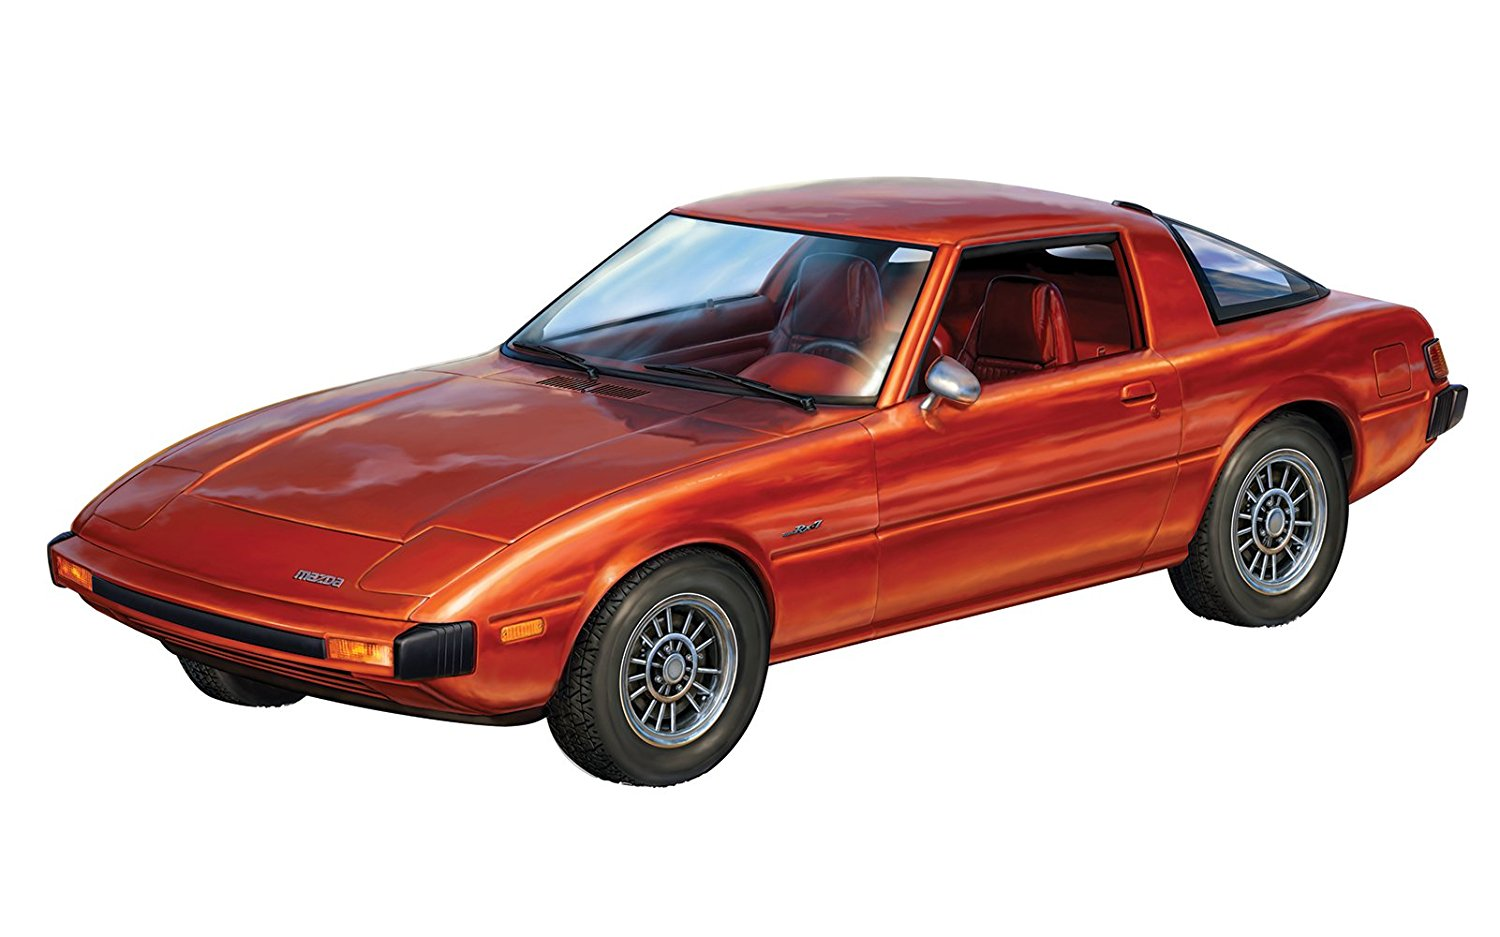 Mazda RX-7 2'n1 Plastic Model Kit, Add this smooth ride to your model collection by... by